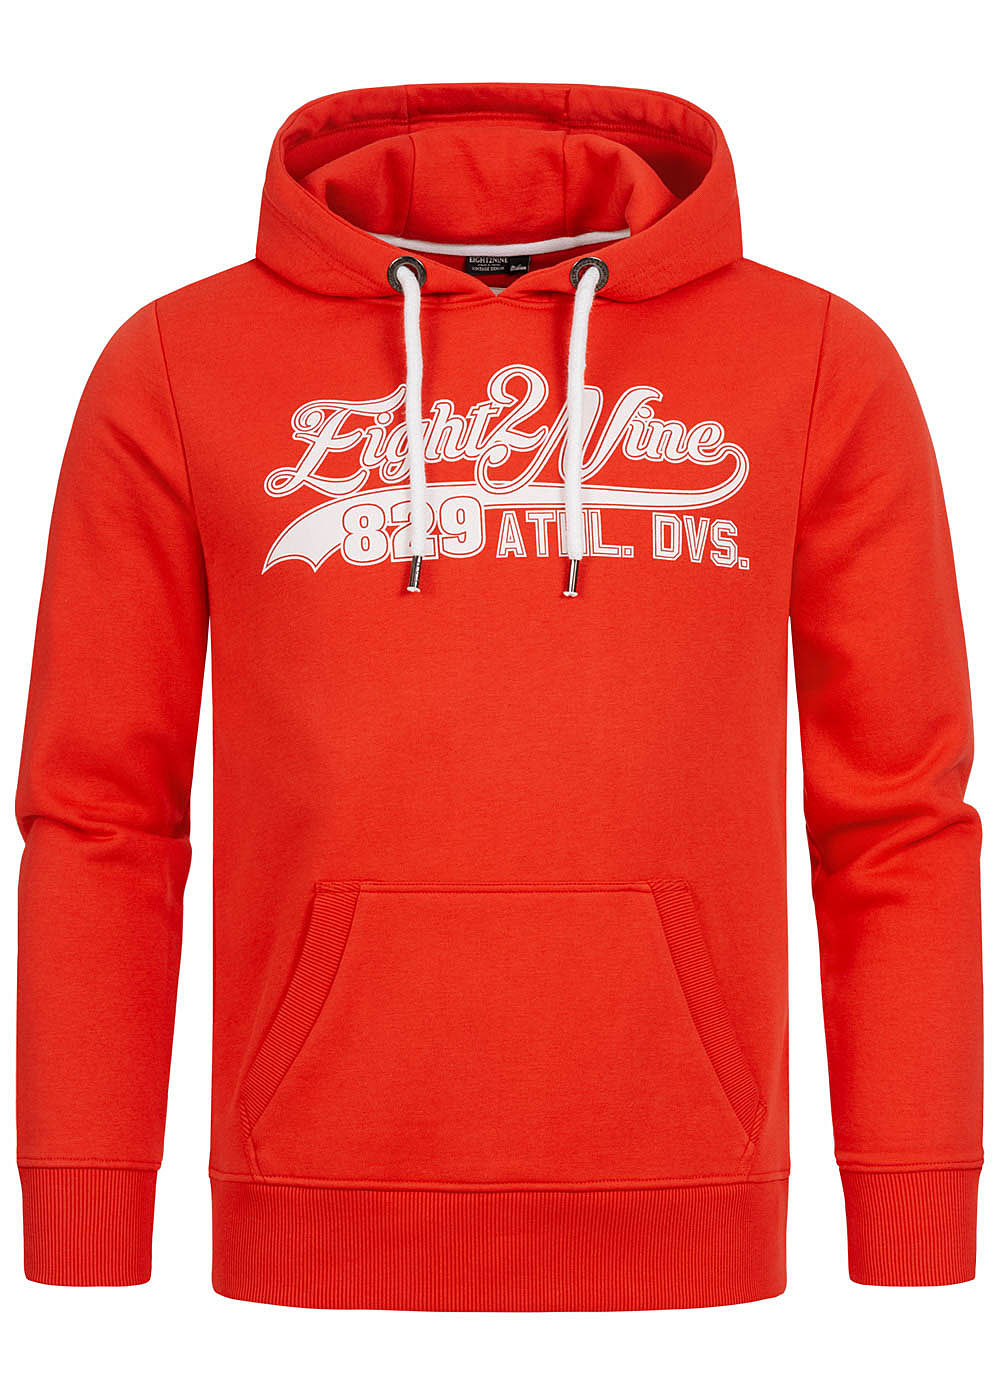 Eight2Nine Herren Sweat Hoodie Kapuze Kängurutasche Logo Frontprint fiery rot - Art.-Nr.: 20094276